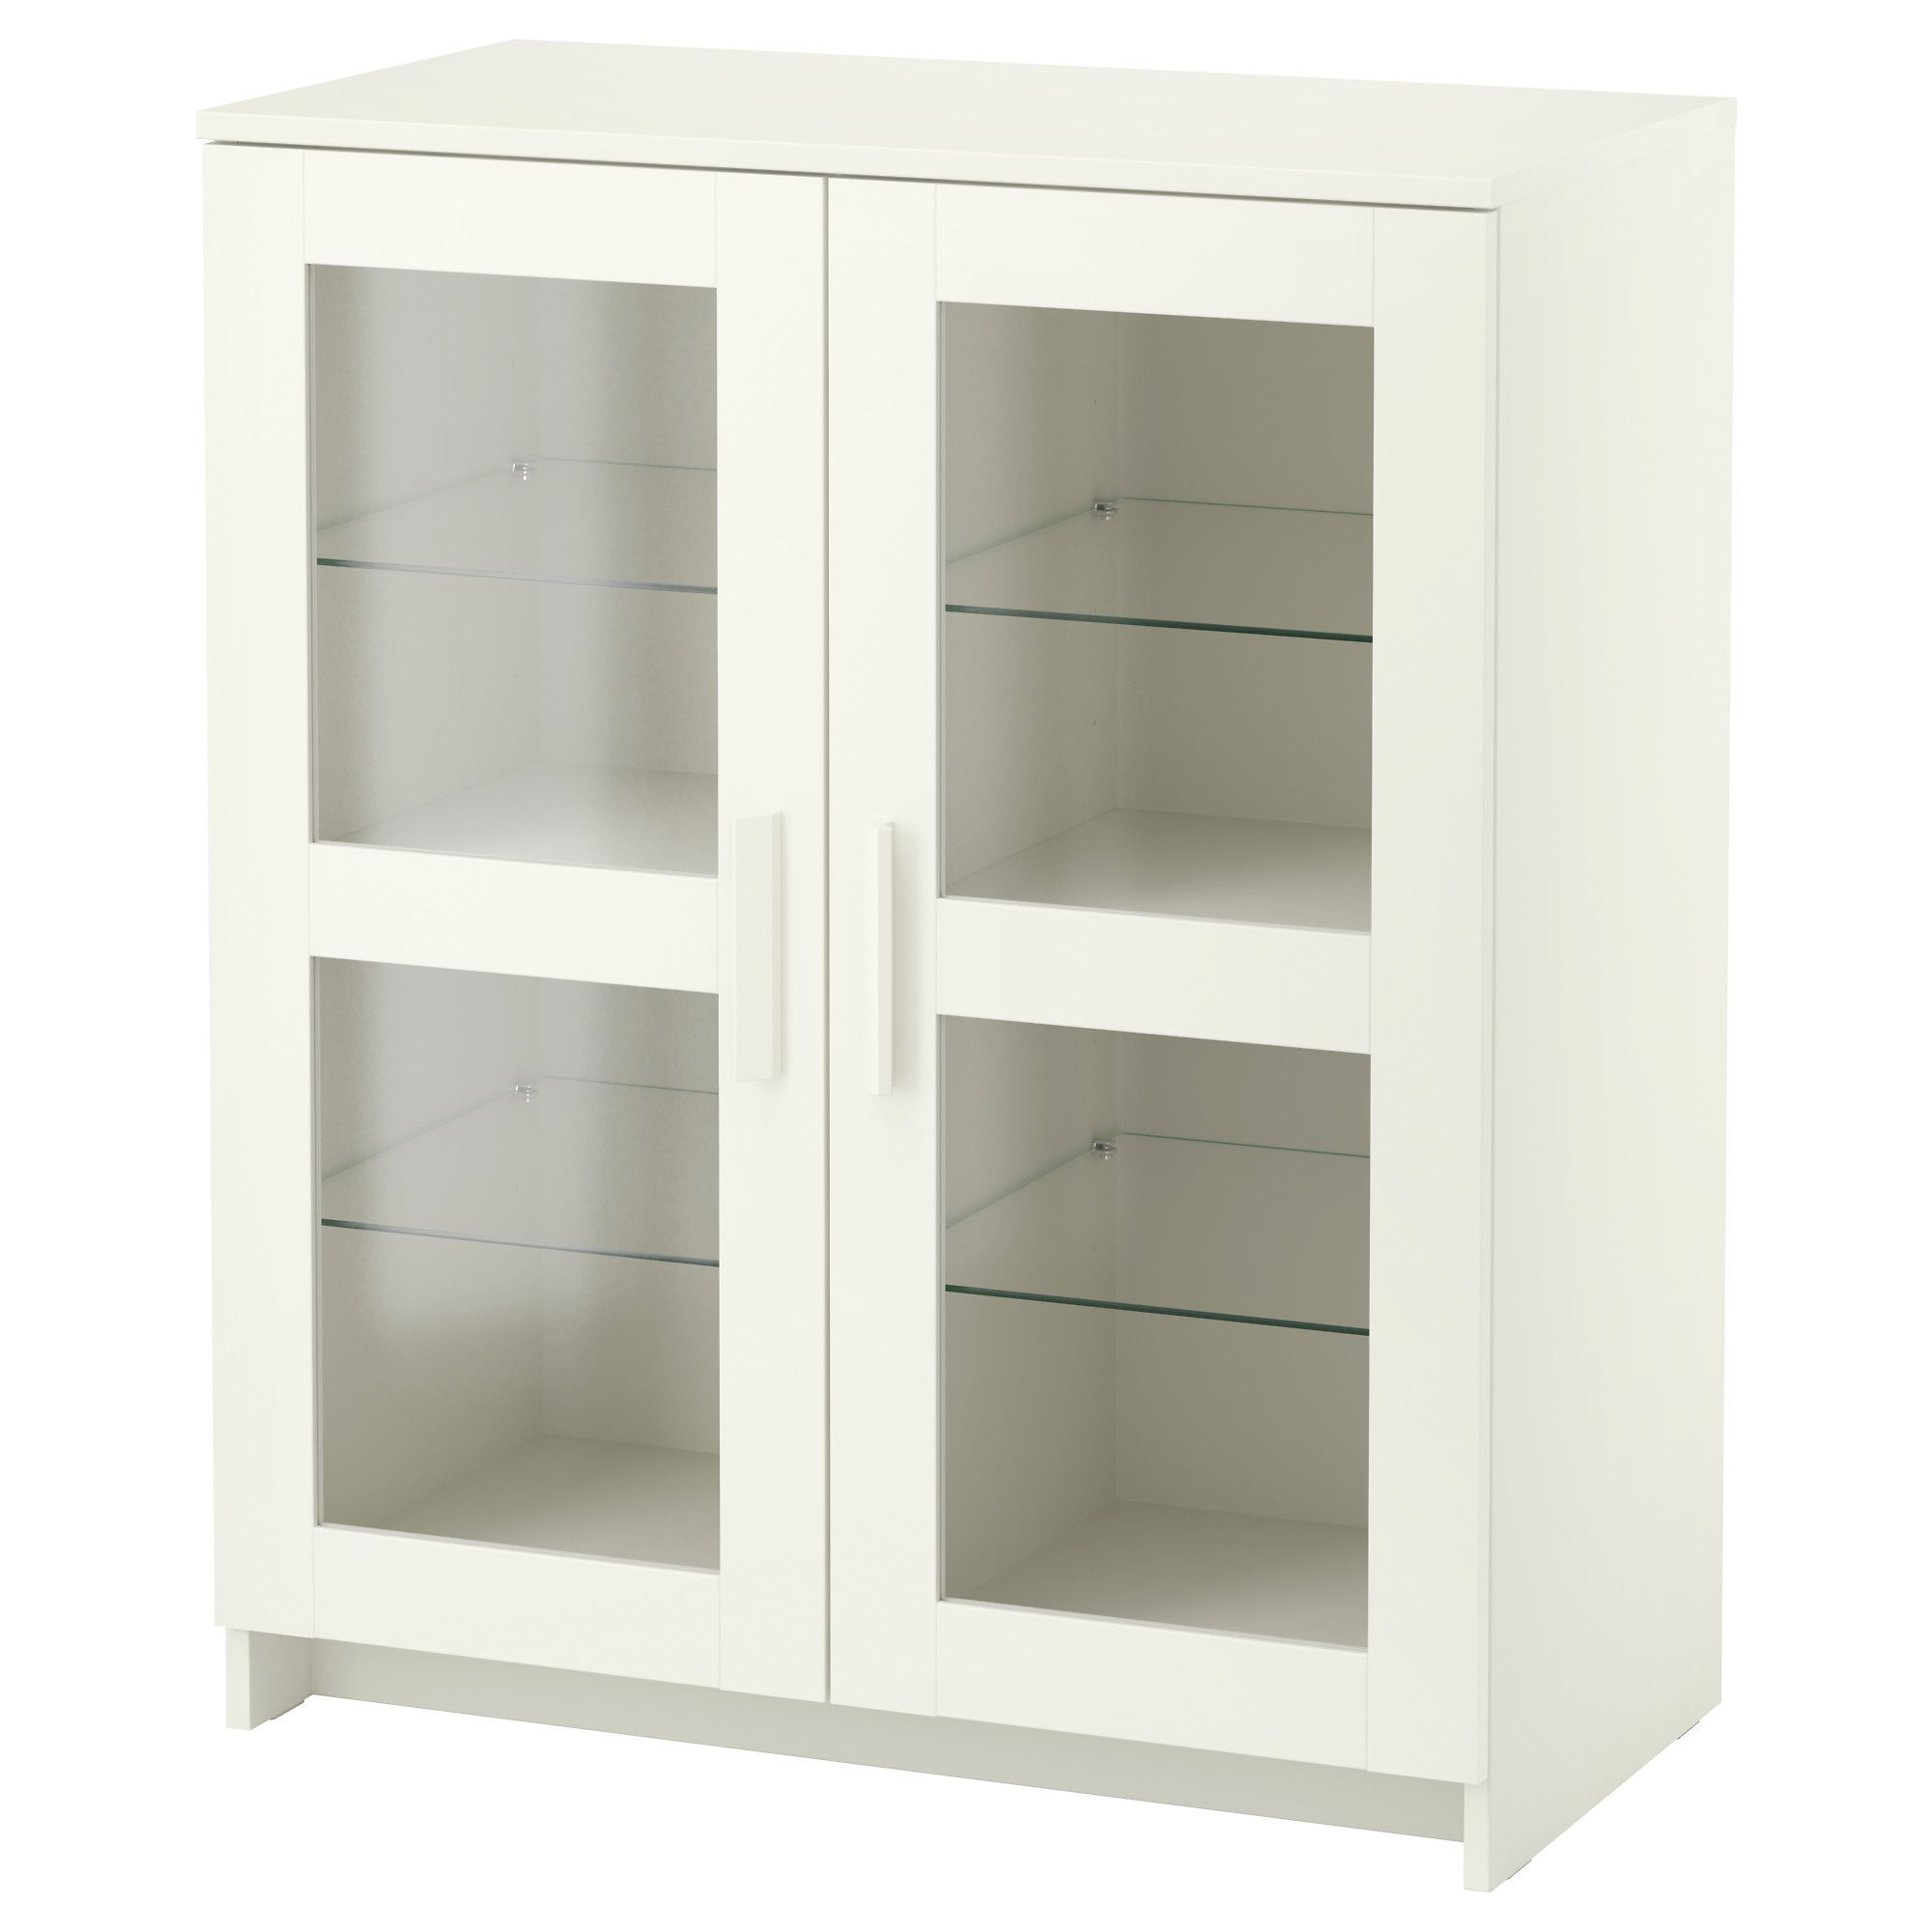 BRIMNES Cabinet with doors, glass, white Doors, Shelves and Storage